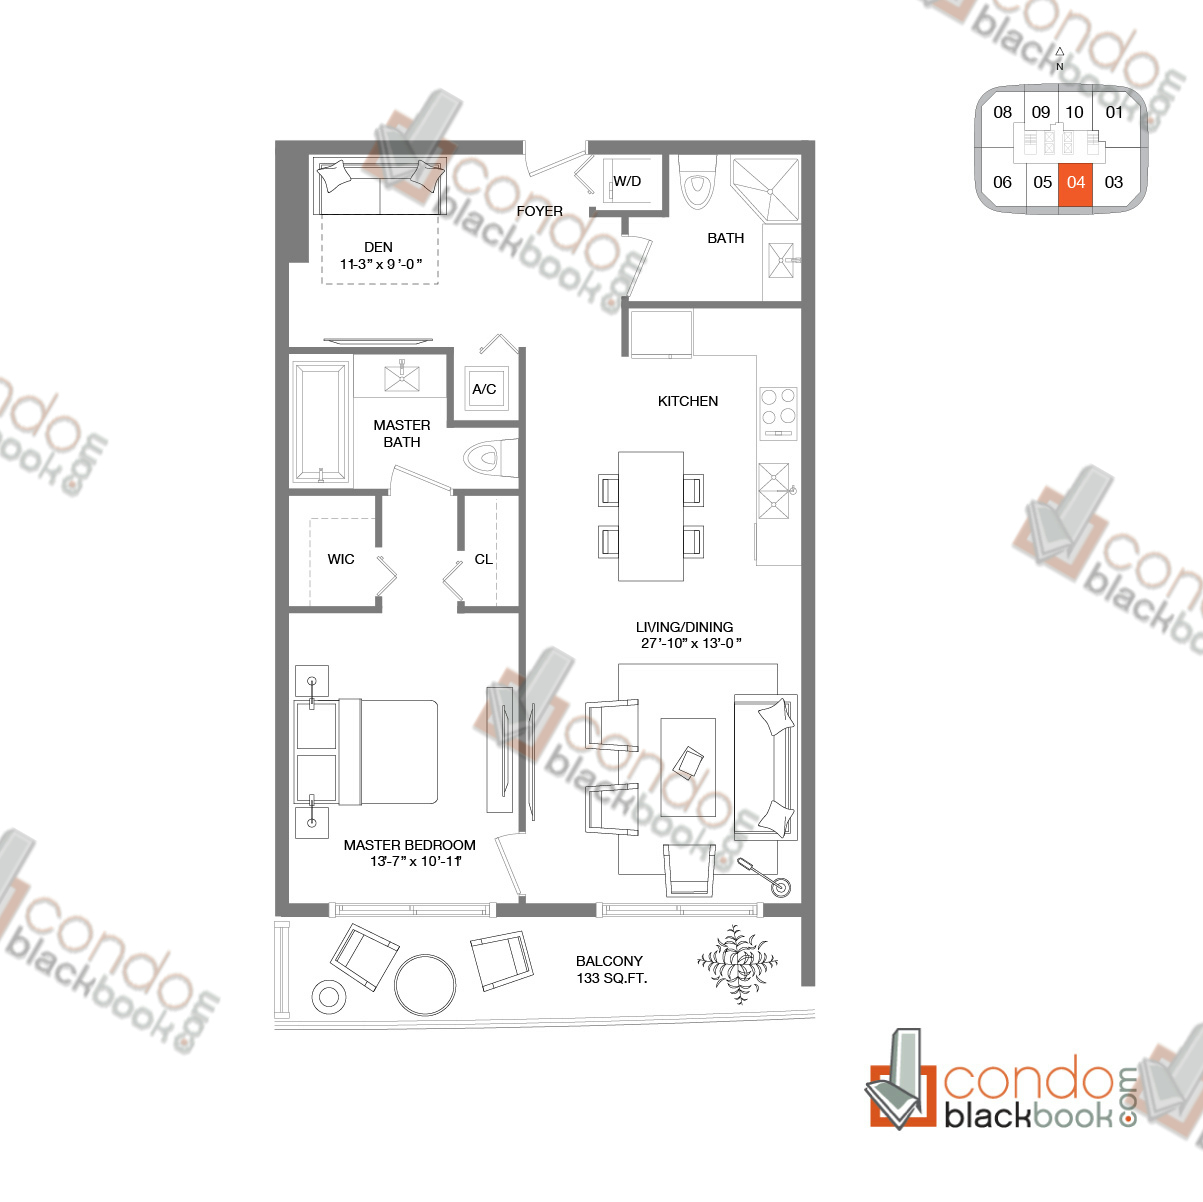 Floor plan for Brickell Heights West Tower Brickell Miami, model RESIDENCE 04, line 04, 1/2+Den bedrooms, 962 sq ft